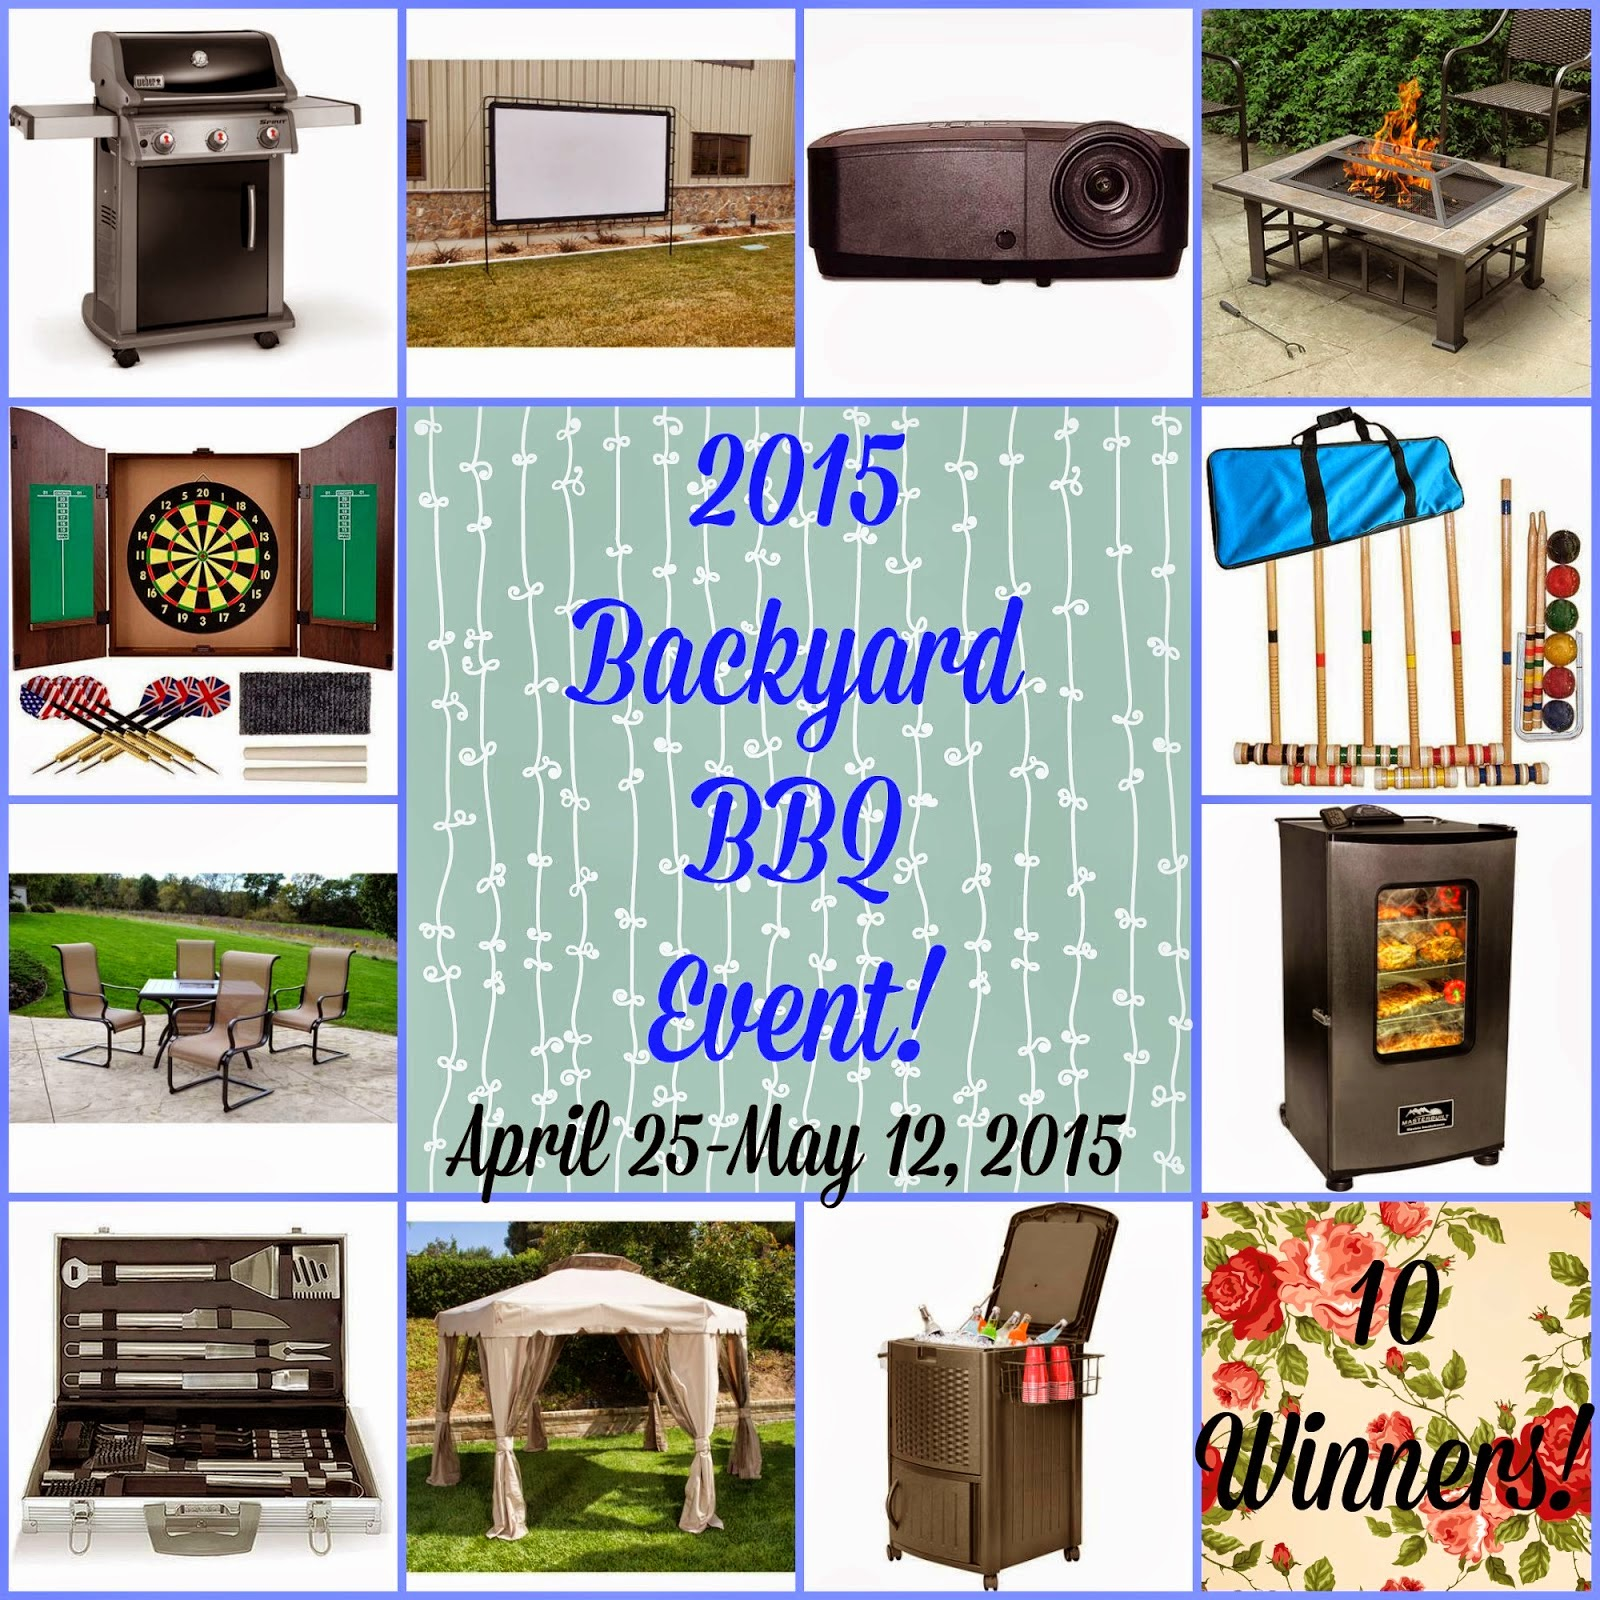 image Back yard BBQ Event Giveaway prizes April 25- May 12,2015